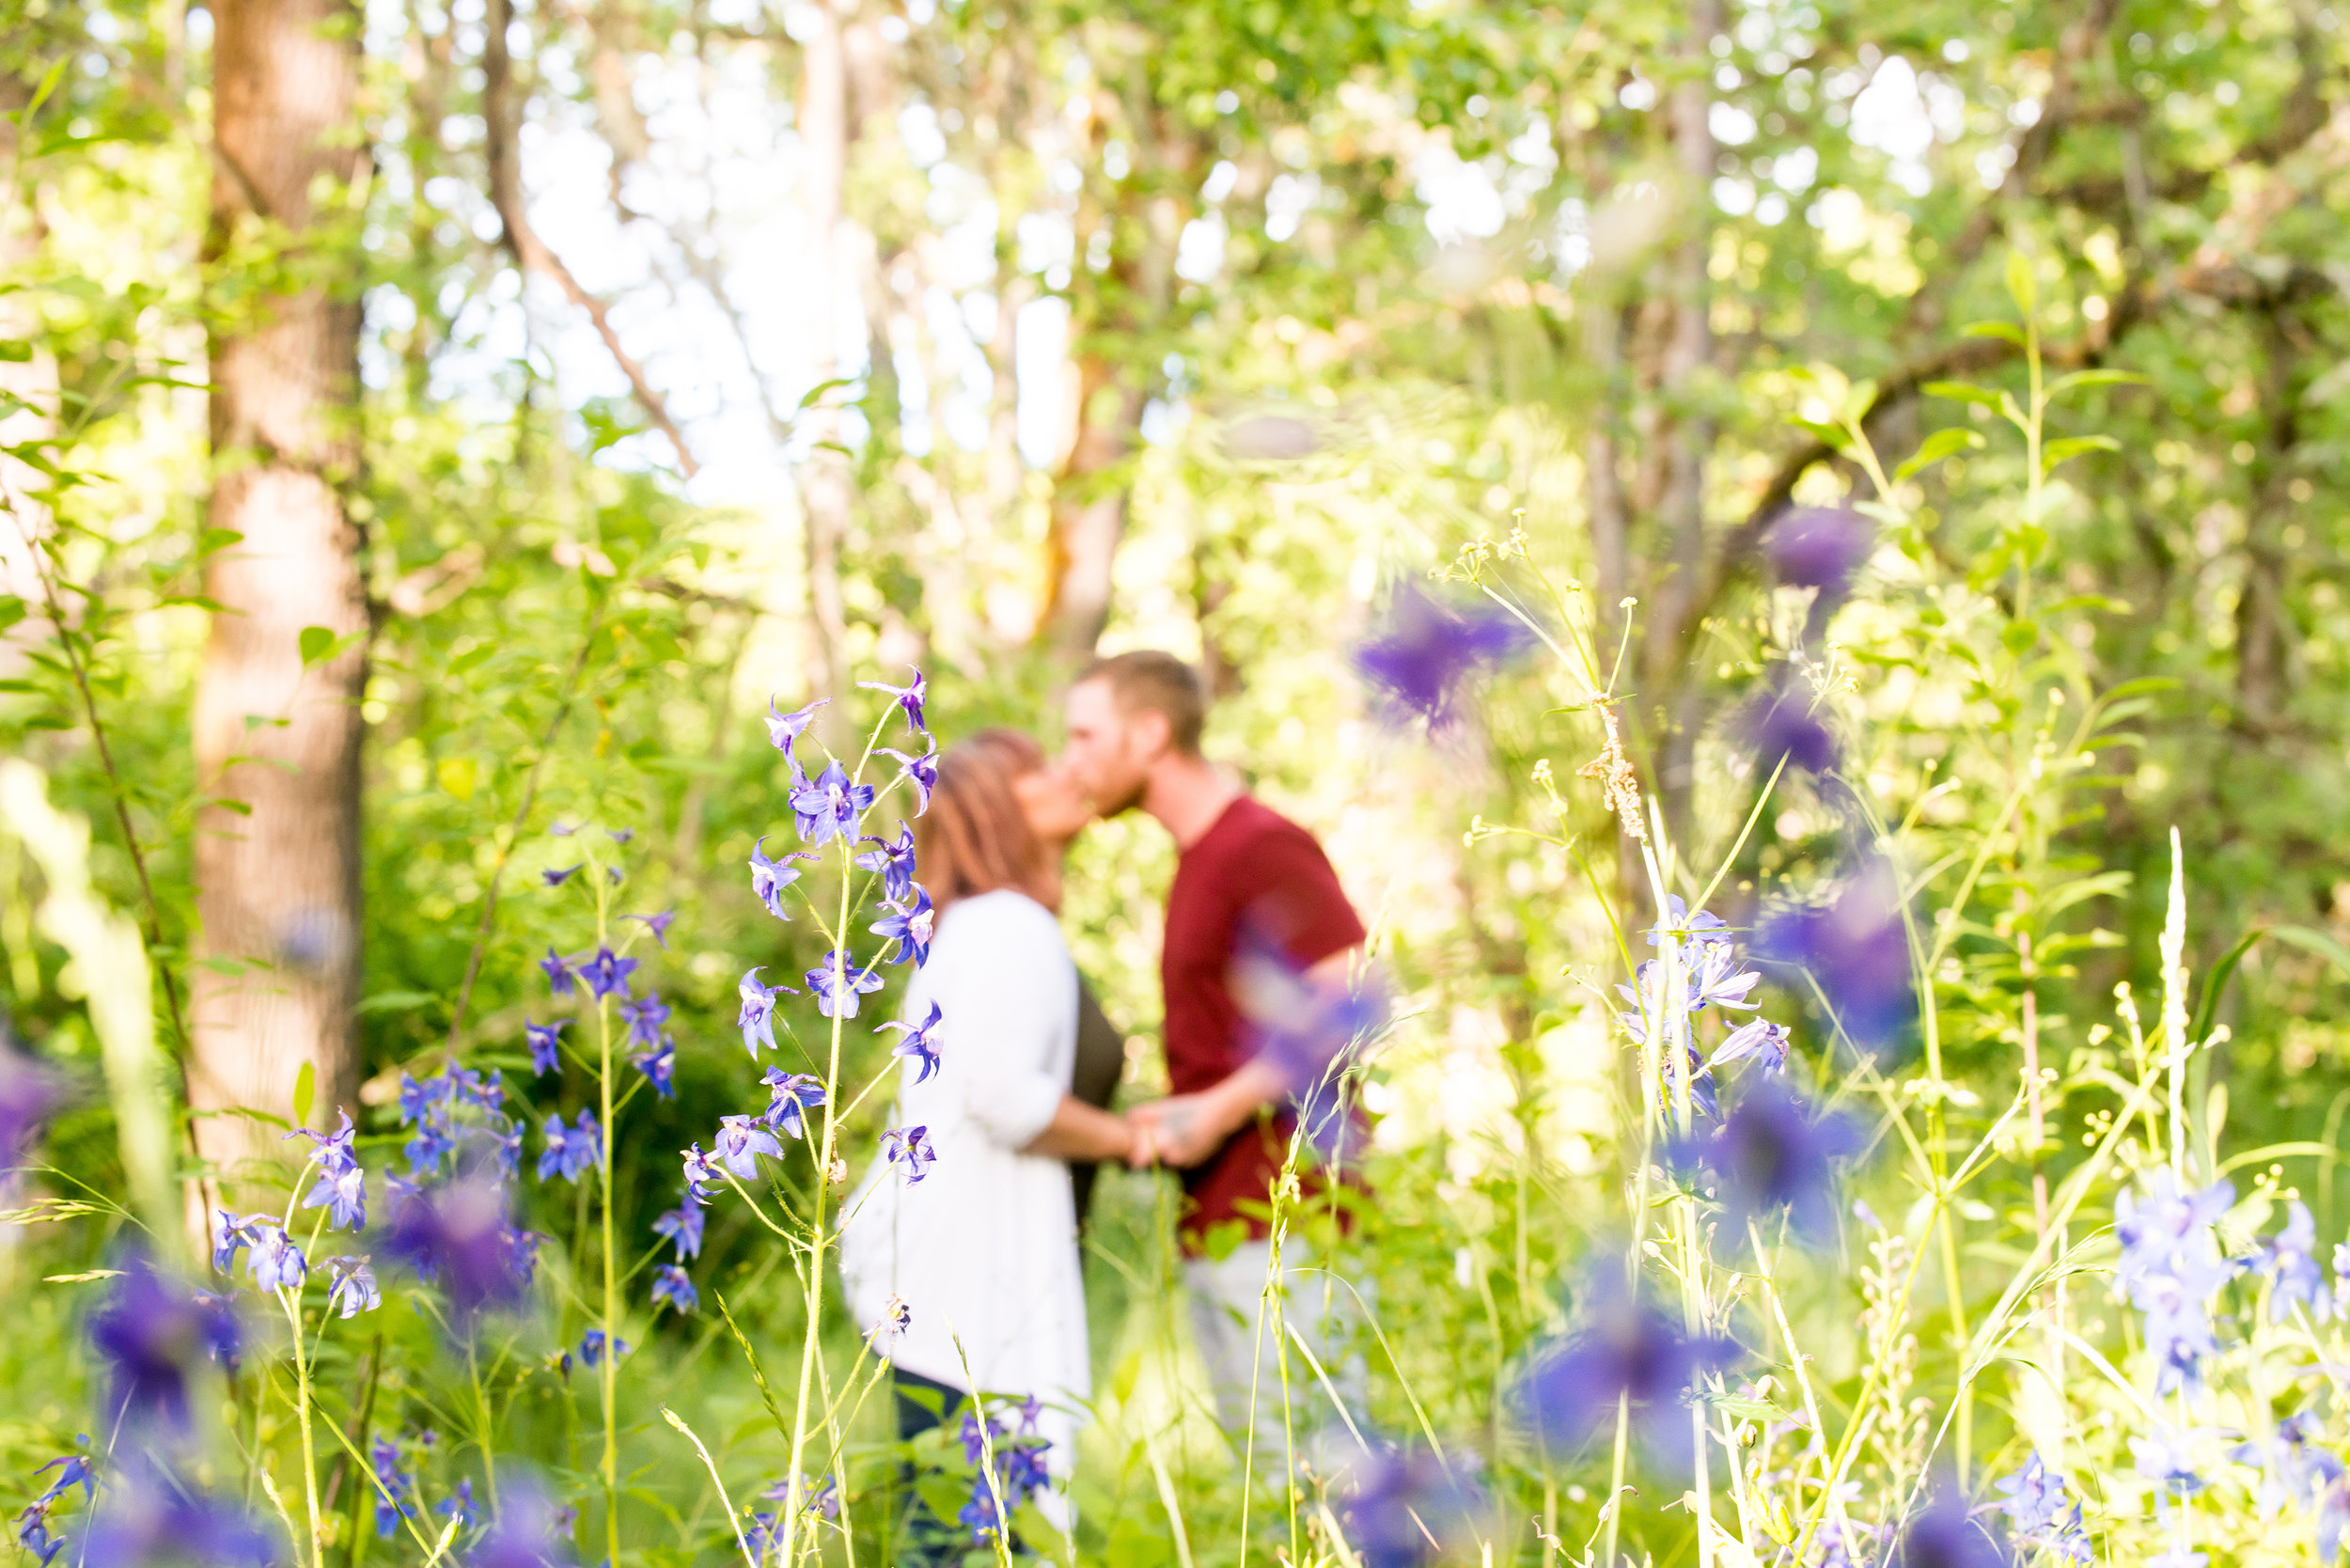 Wes Fisher Photography - Engagement - kissing out of focus.jpg